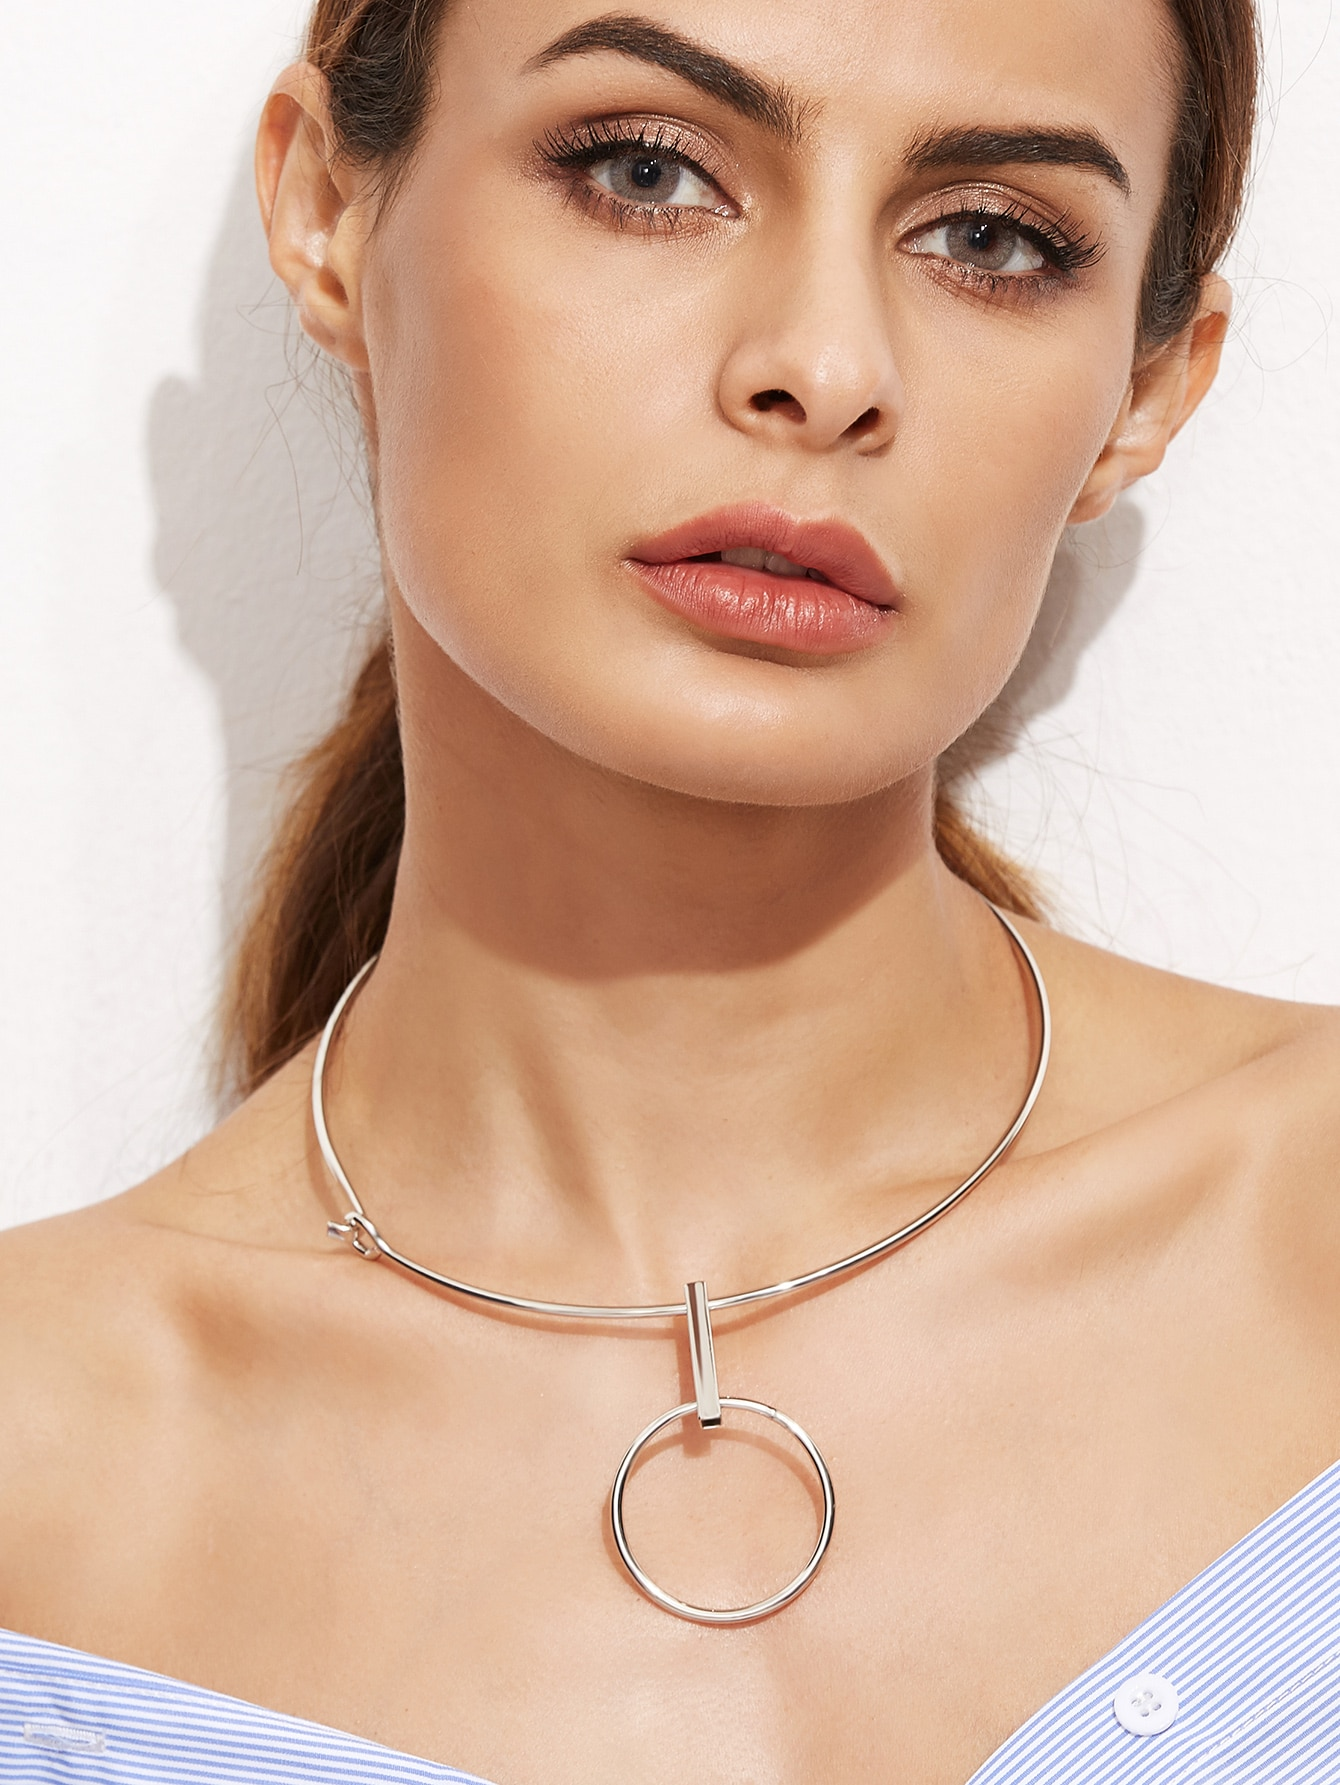 Silver Plated Metal Circle Hollow Out Choker NecklaceSilver Plated Metal Circle Hollow Out Choker Necklace<br><br>color: Silver<br>size: None